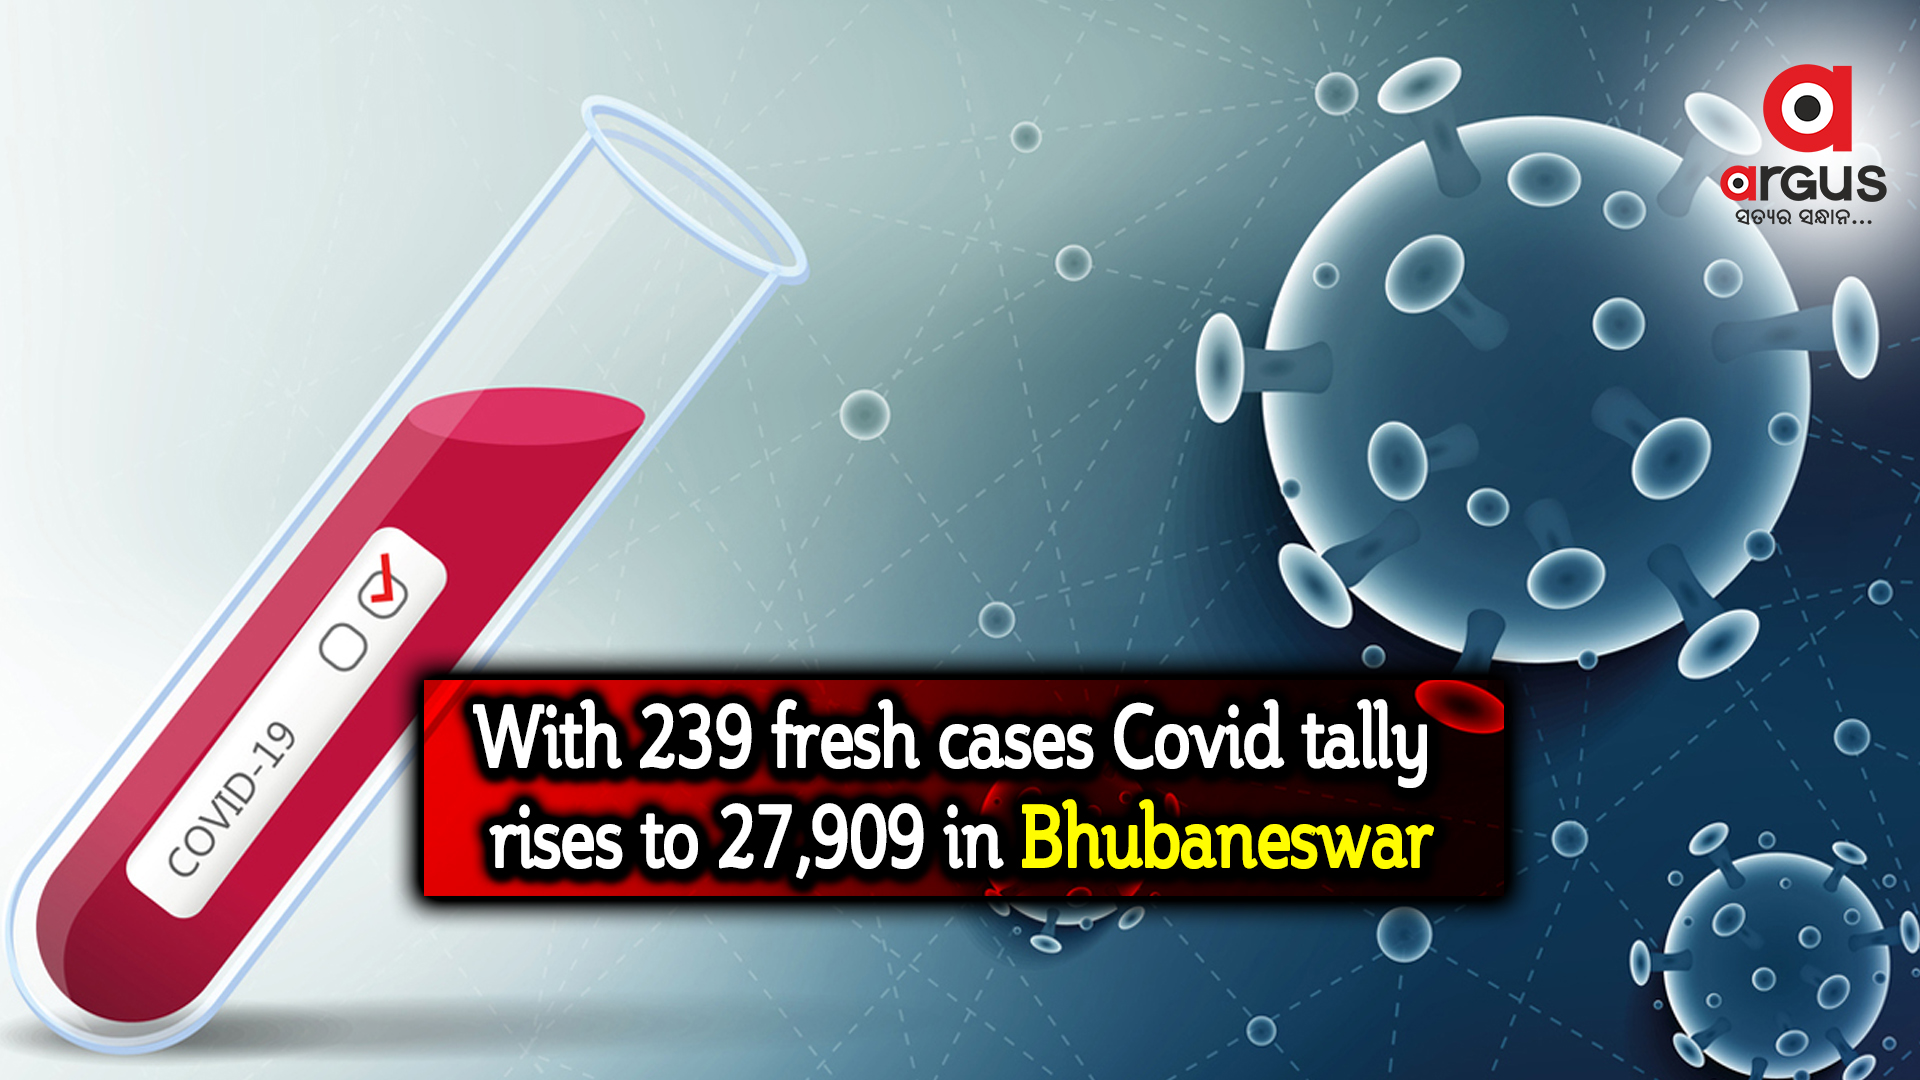 With 239 fresh cases Covid tally rises to 27,909 in Bhubaneswar